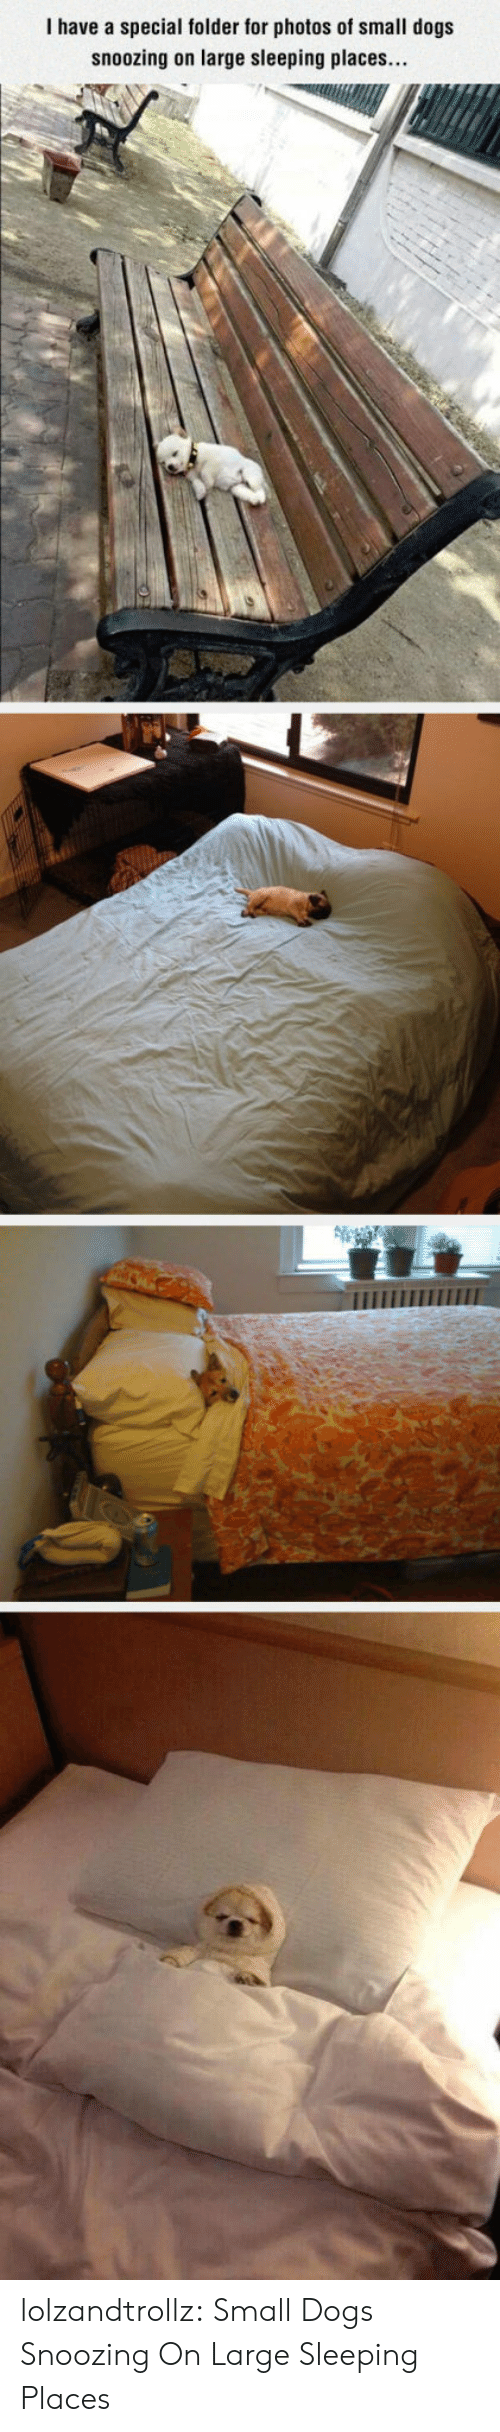 Dogs, Tumblr, and Blog: I have a special folder for photos of small dogs  snoozing on large sleeping places... lolzandtrollz:  Small Dogs Snoozing On Large Sleeping Places